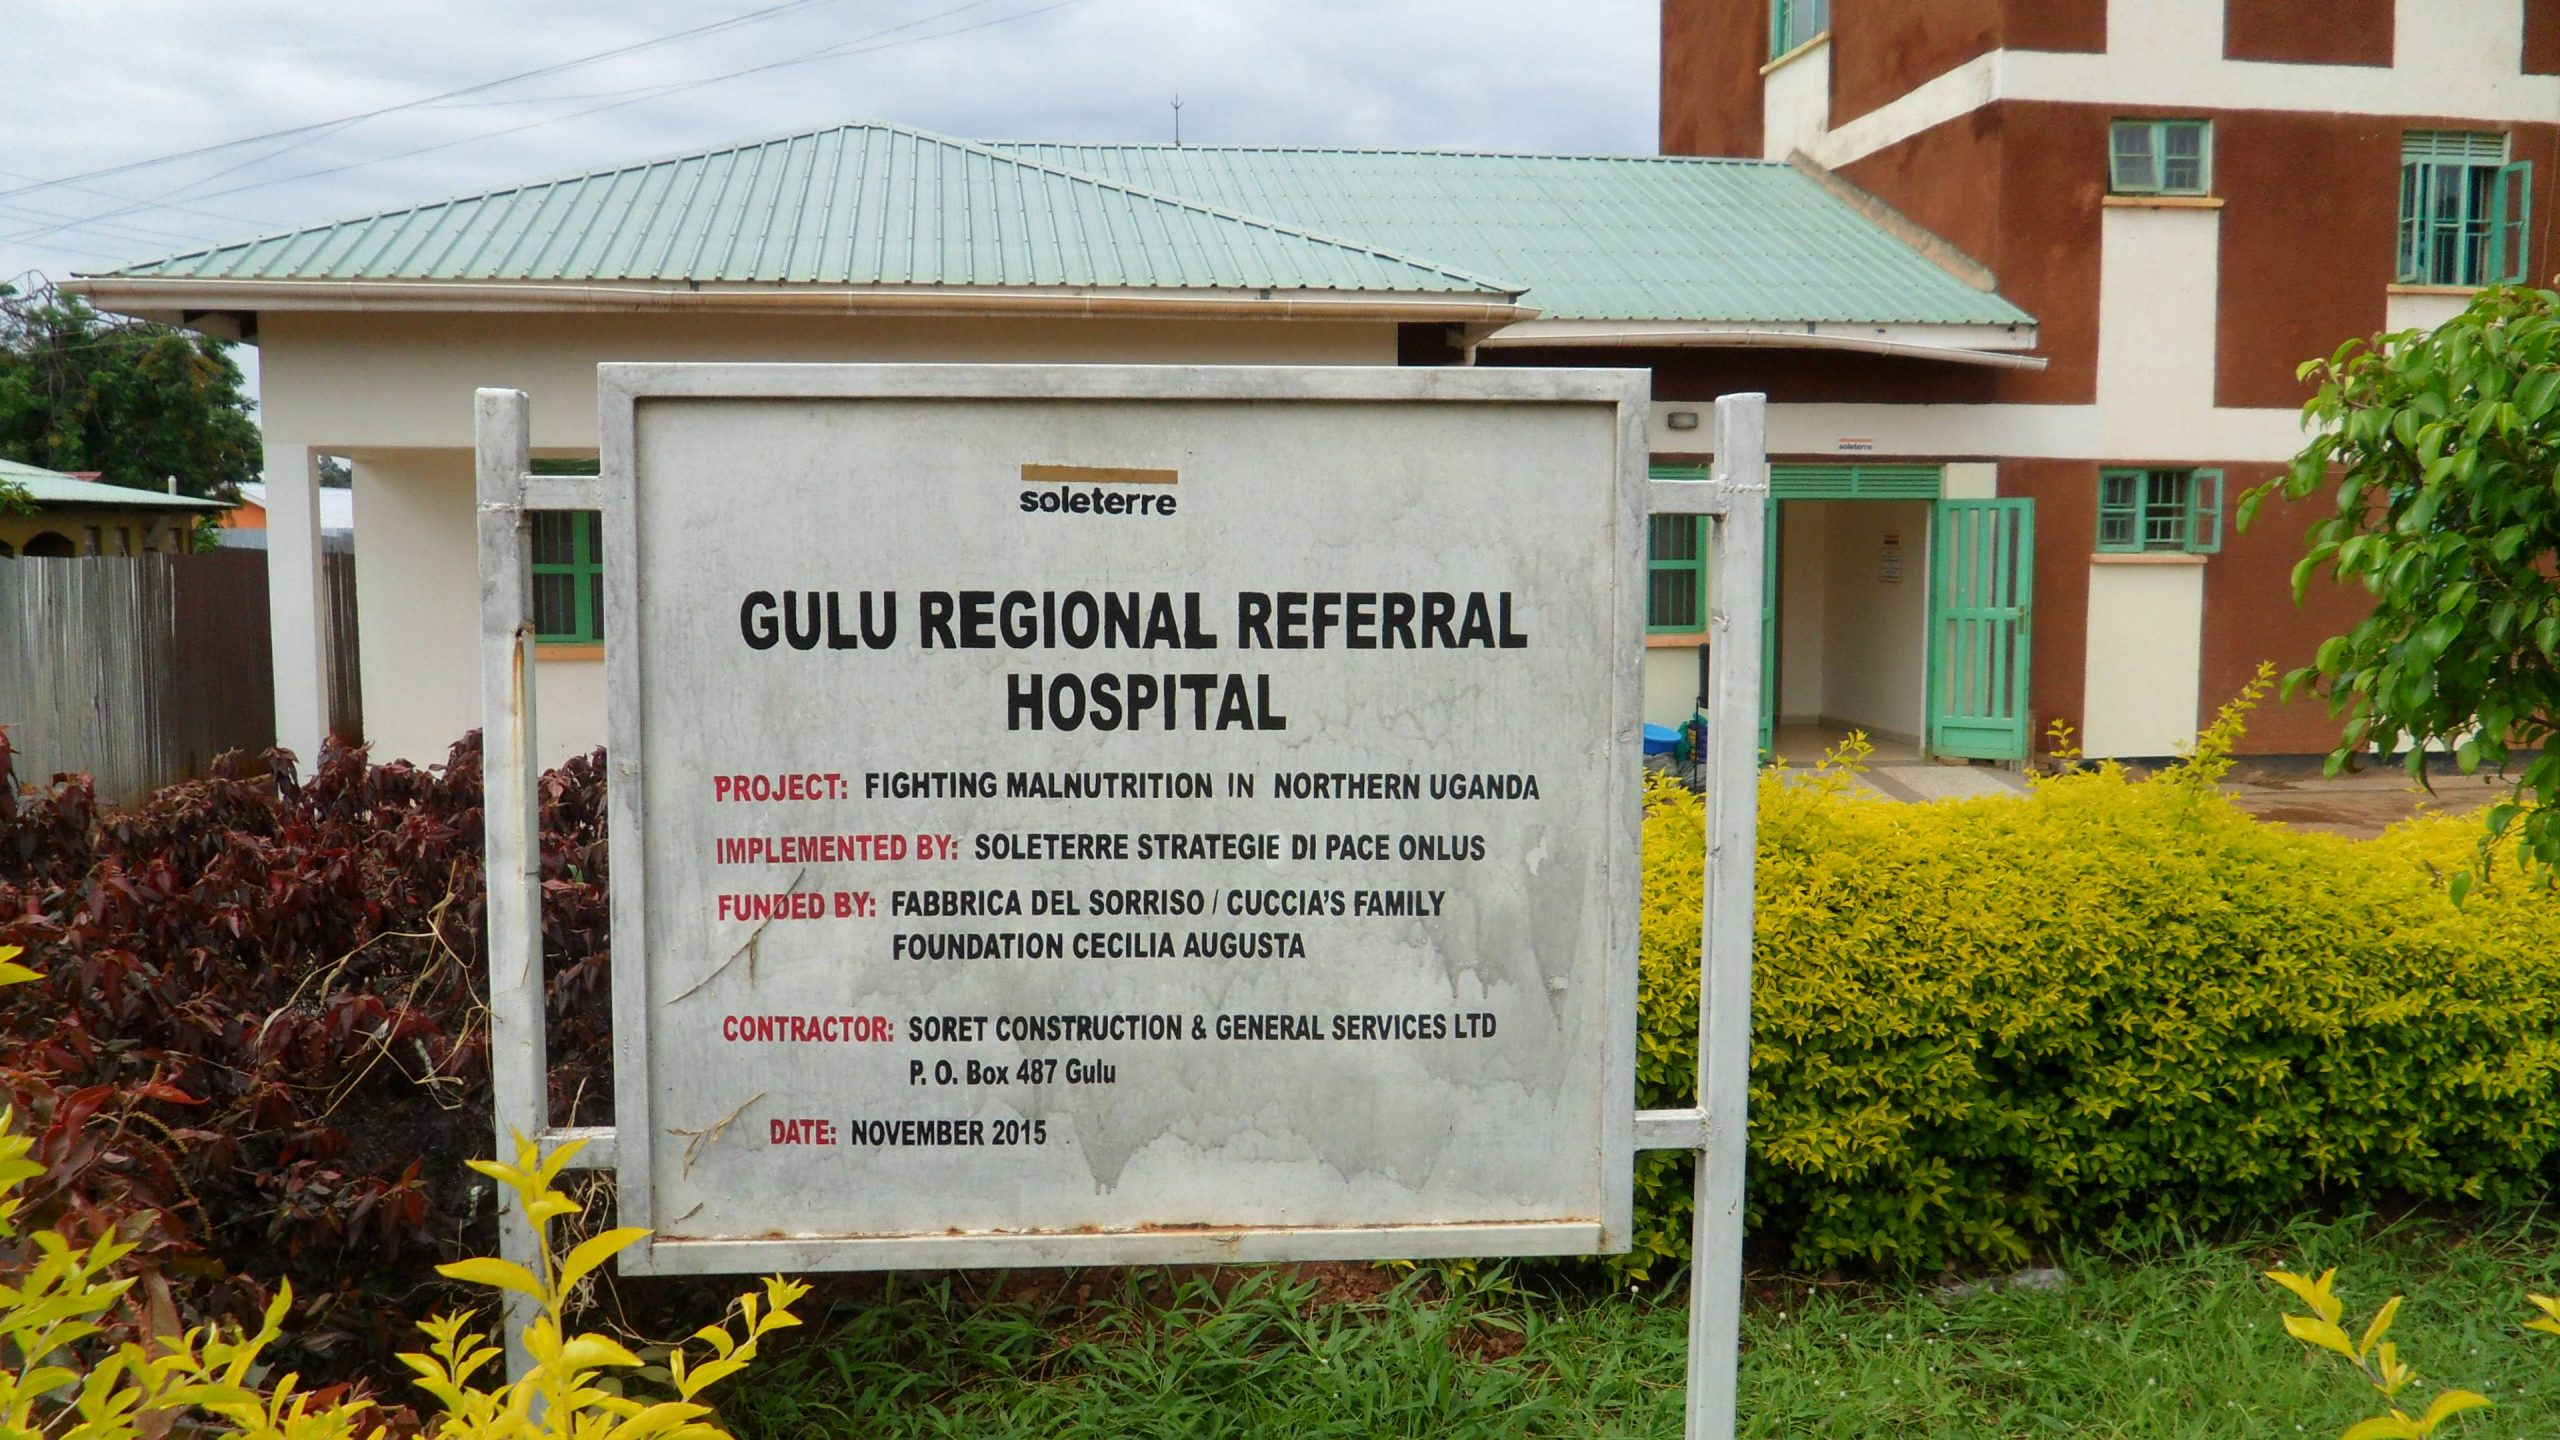 Gulu Mortuary Attendants Charging Exorbitantly To Release Dead Bodies